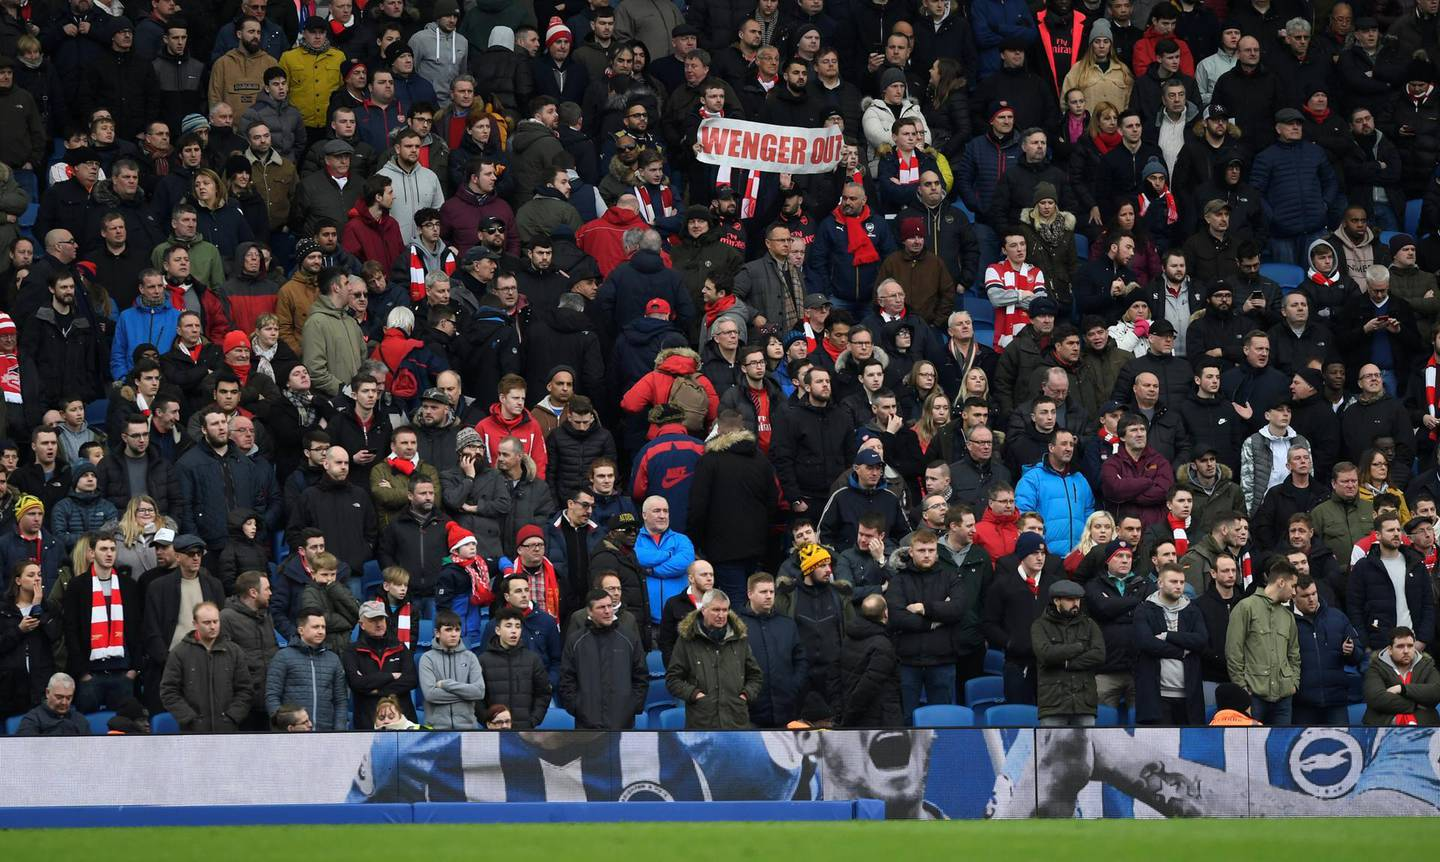 """Soccer Football - Premier League - Brighton & Hove Albion vs Arsenal - The American Express Community Stadium, Brighton, Britain - March 4, 2018   Arsenal fans display banners in reference to manager Arsene Wenger   Action Images via Reuters/Tony O'Brien    EDITORIAL USE ONLY. No use with unauthorized audio, video, data, fixture lists, club/league logos or """"live"""" services. Online in-match use limited to 75 images, no video emulation. No use in betting, games or single club/league/player publications.  Please contact your account representative for further details."""